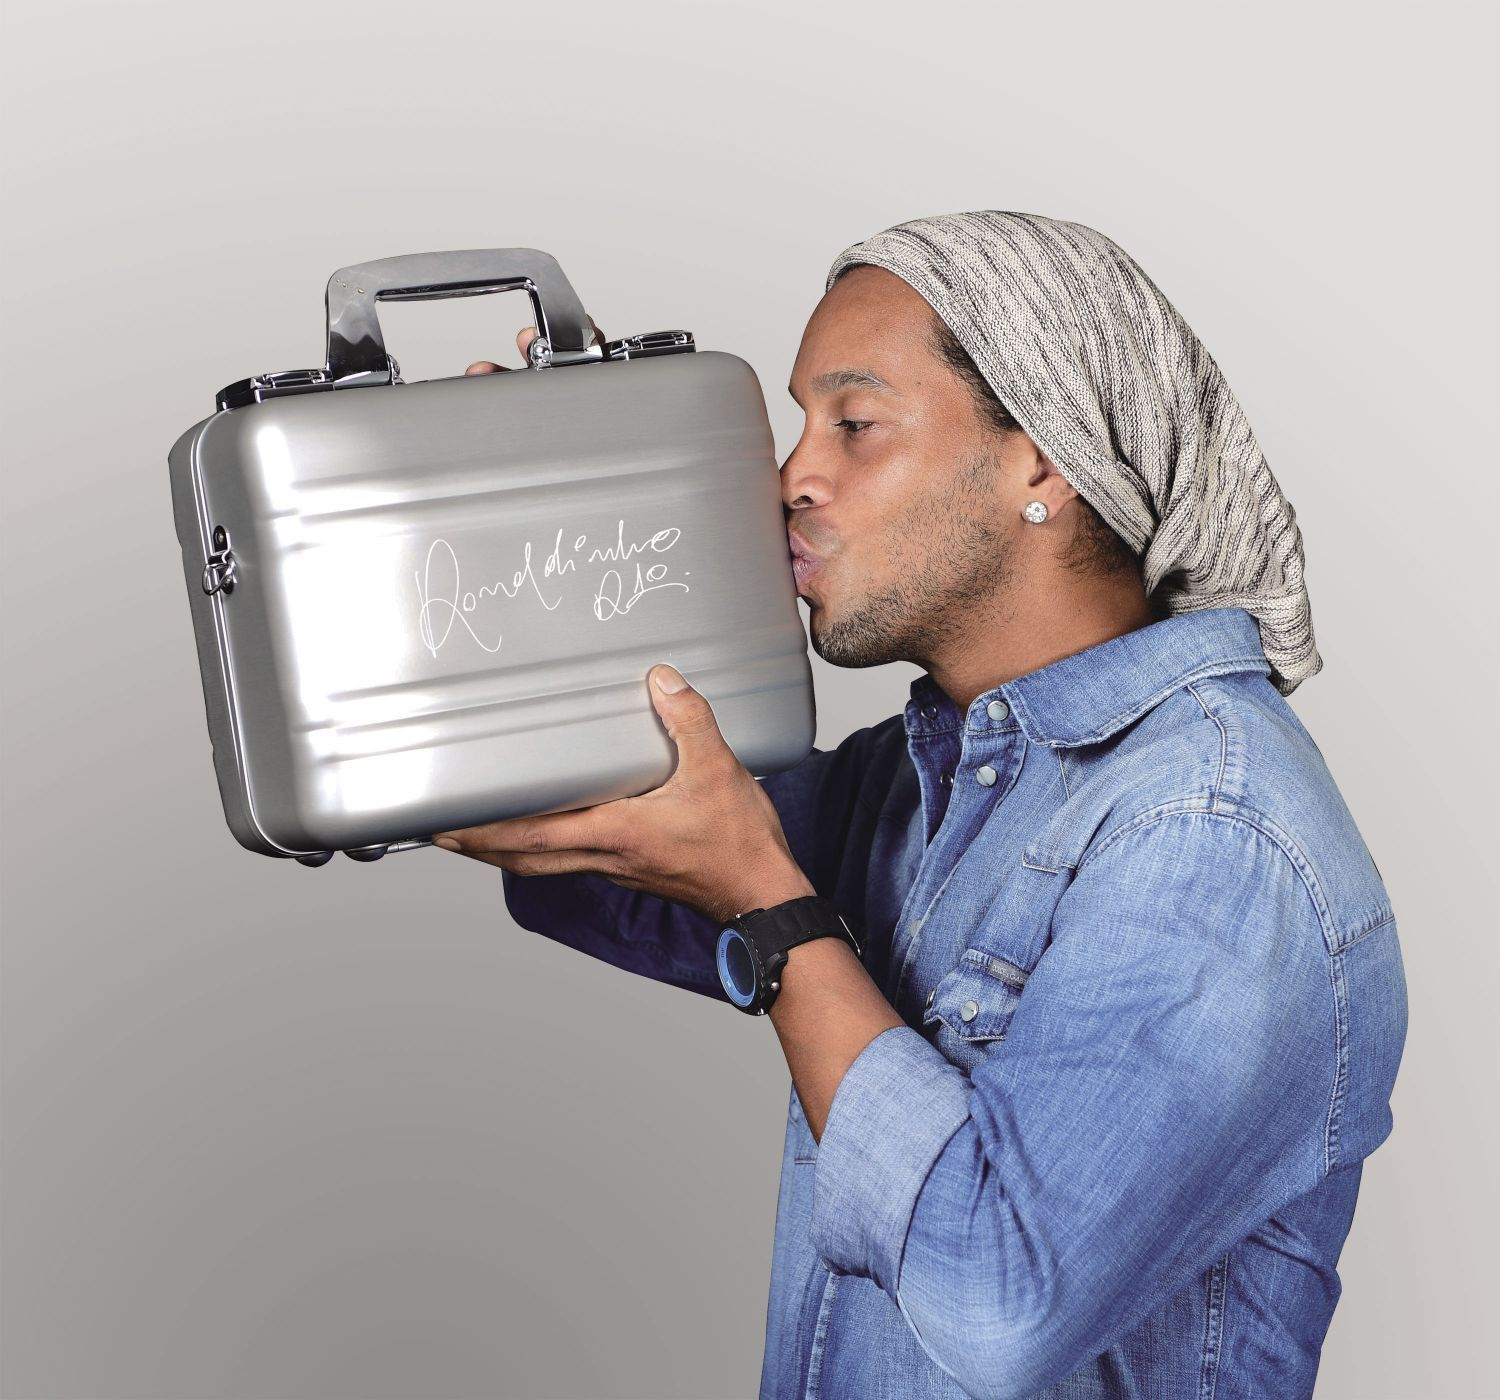 In collaboration with our Global Brand Ambassador, Brazilian Soccer Star Ronaldinho, this Limited Edition Ronaldinho Camera Case Set enables you to carry your DSLR Camera with style and confidence.